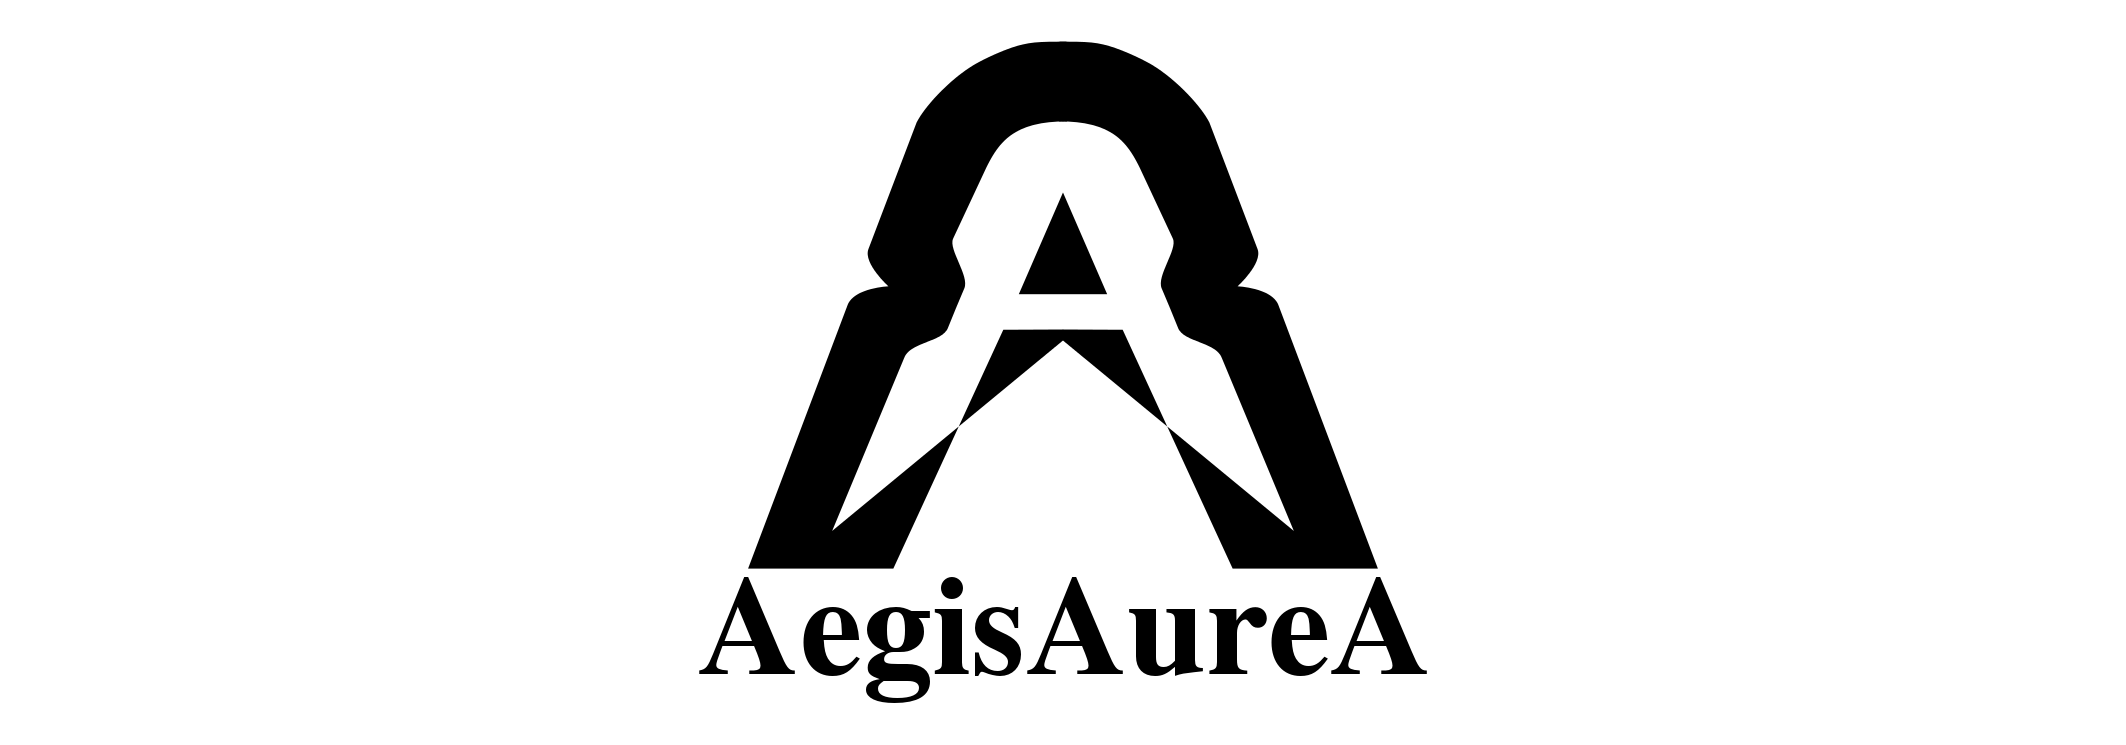 logo_aegis_2015_black_white_with_text_banner